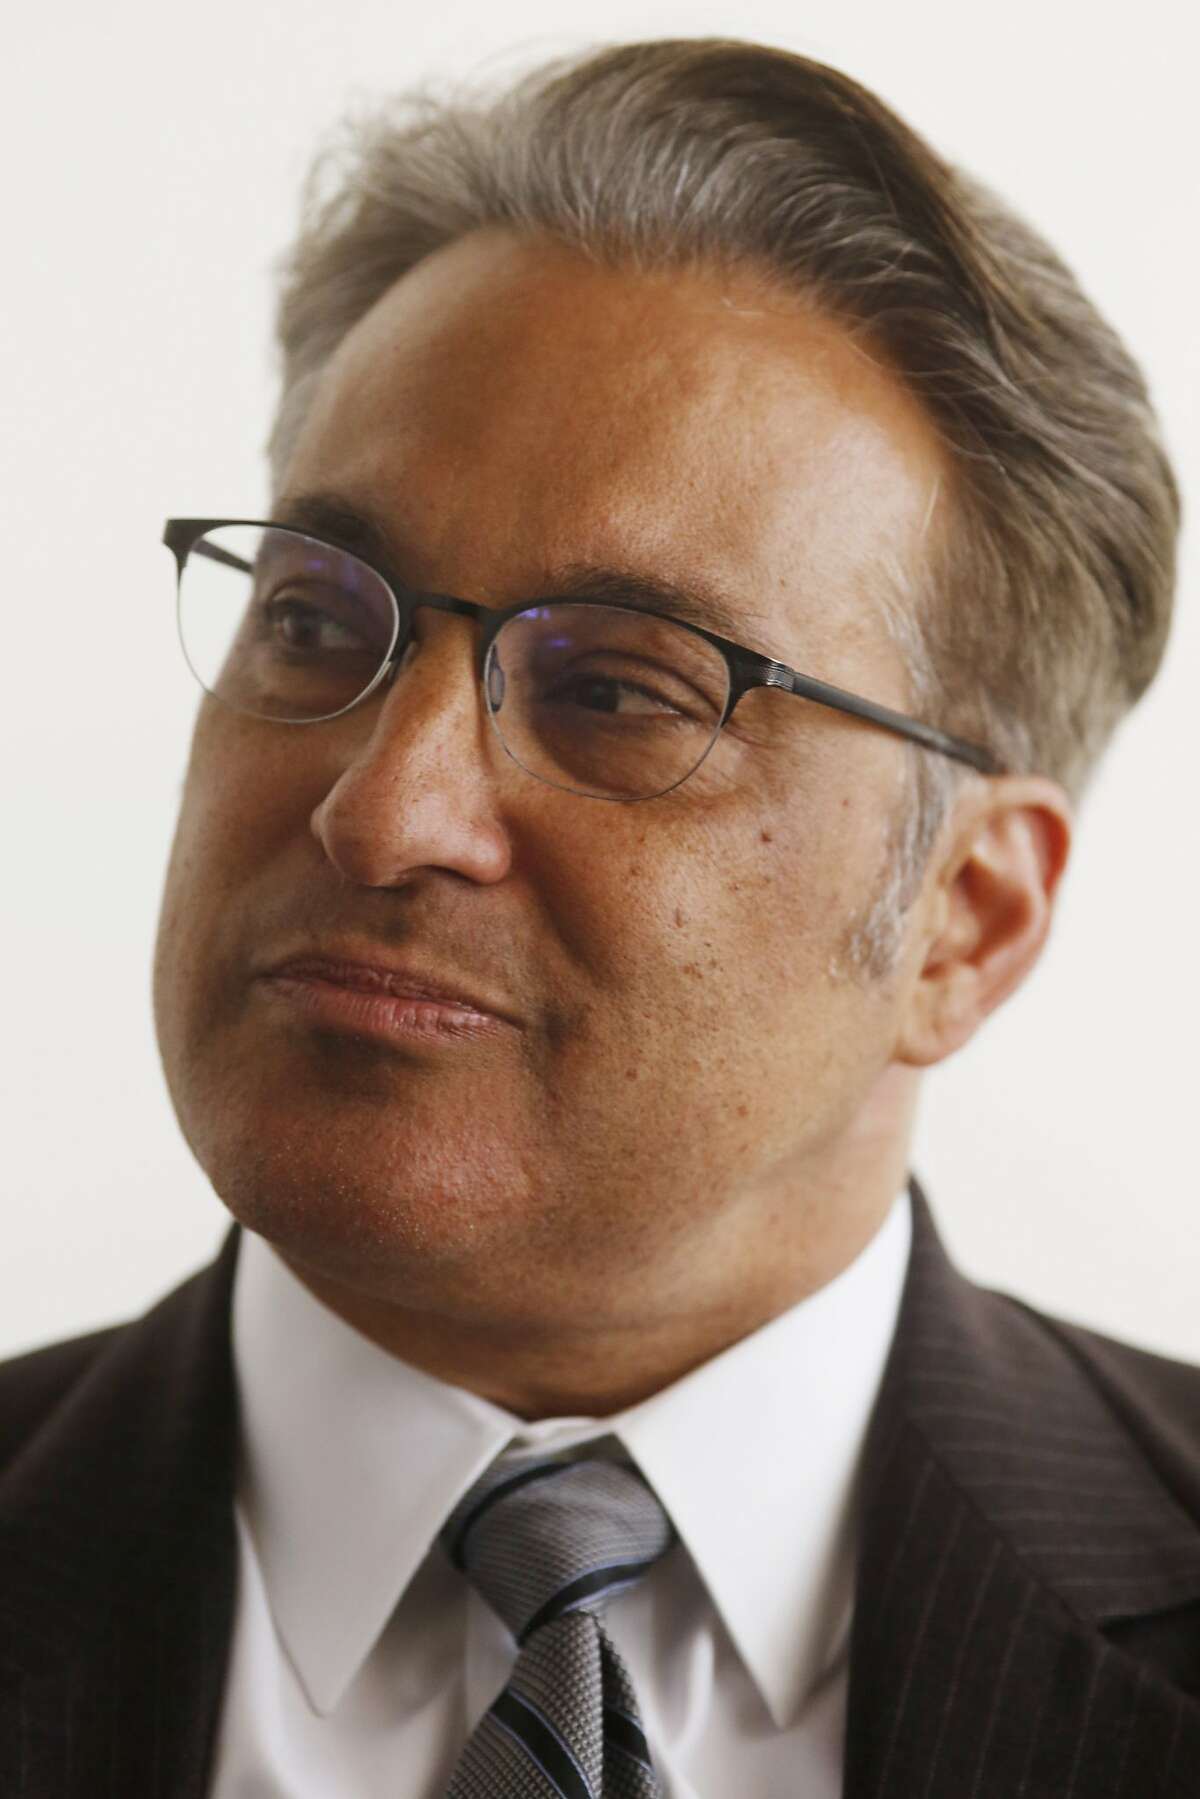 San Francisco City and County Sheriff Ross Mirkarimi talks about new sewing class at the county jail on Monday May 11, 2015 in San Francisco, Calif. Sheriff Mirkarimi said he hopes classes like this will help bring a positive brand to San Francisco.